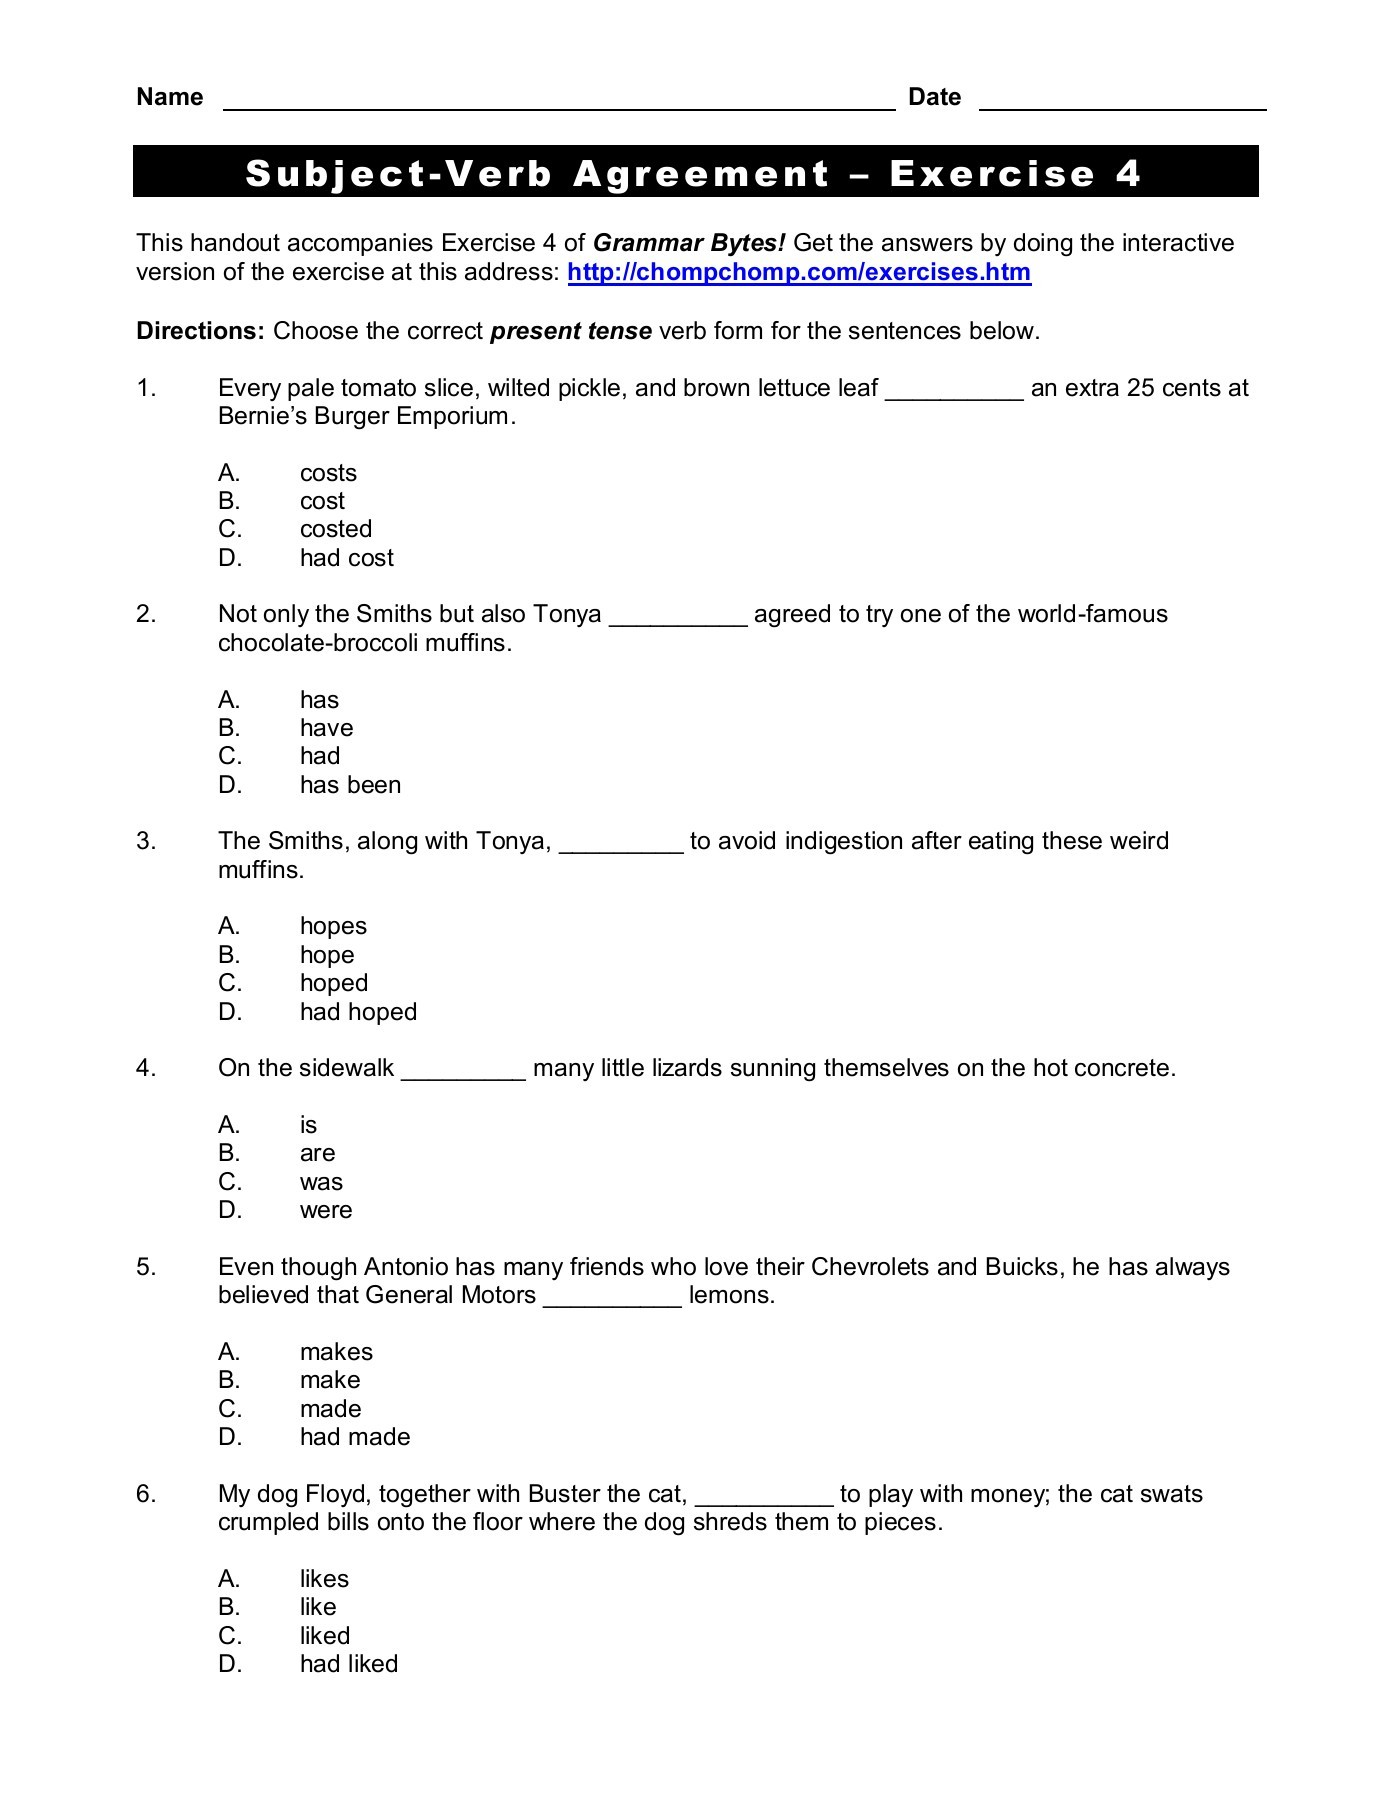 Exercises On Subject Verb Agreement With Answers